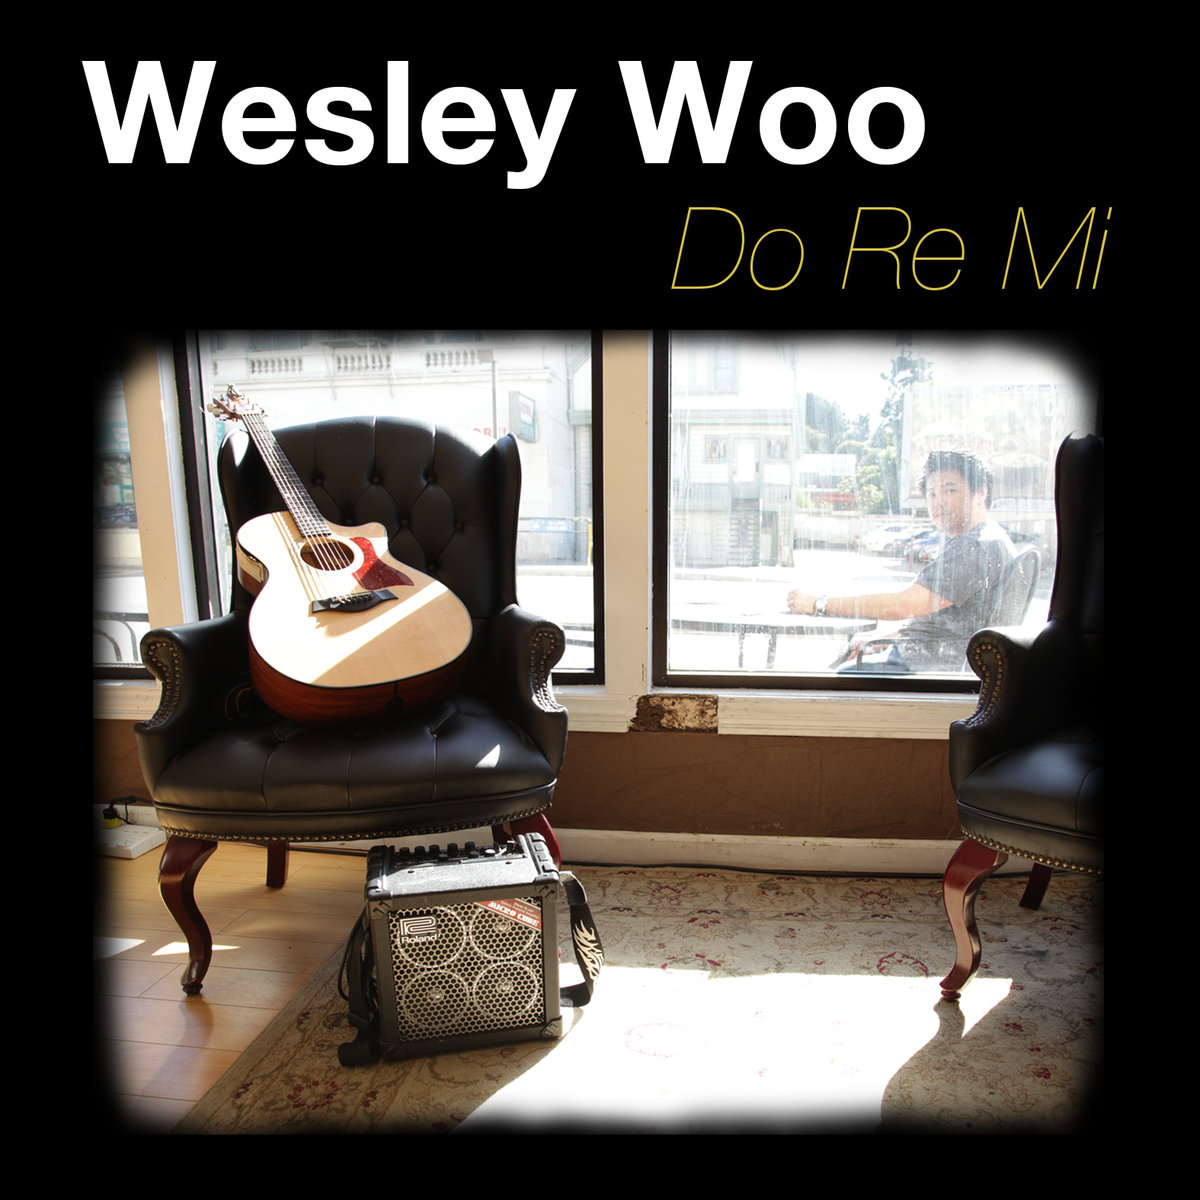 Wesley Woo - Stay @ 'Do Re Mi' album (11th ave records, 11th avenue records)